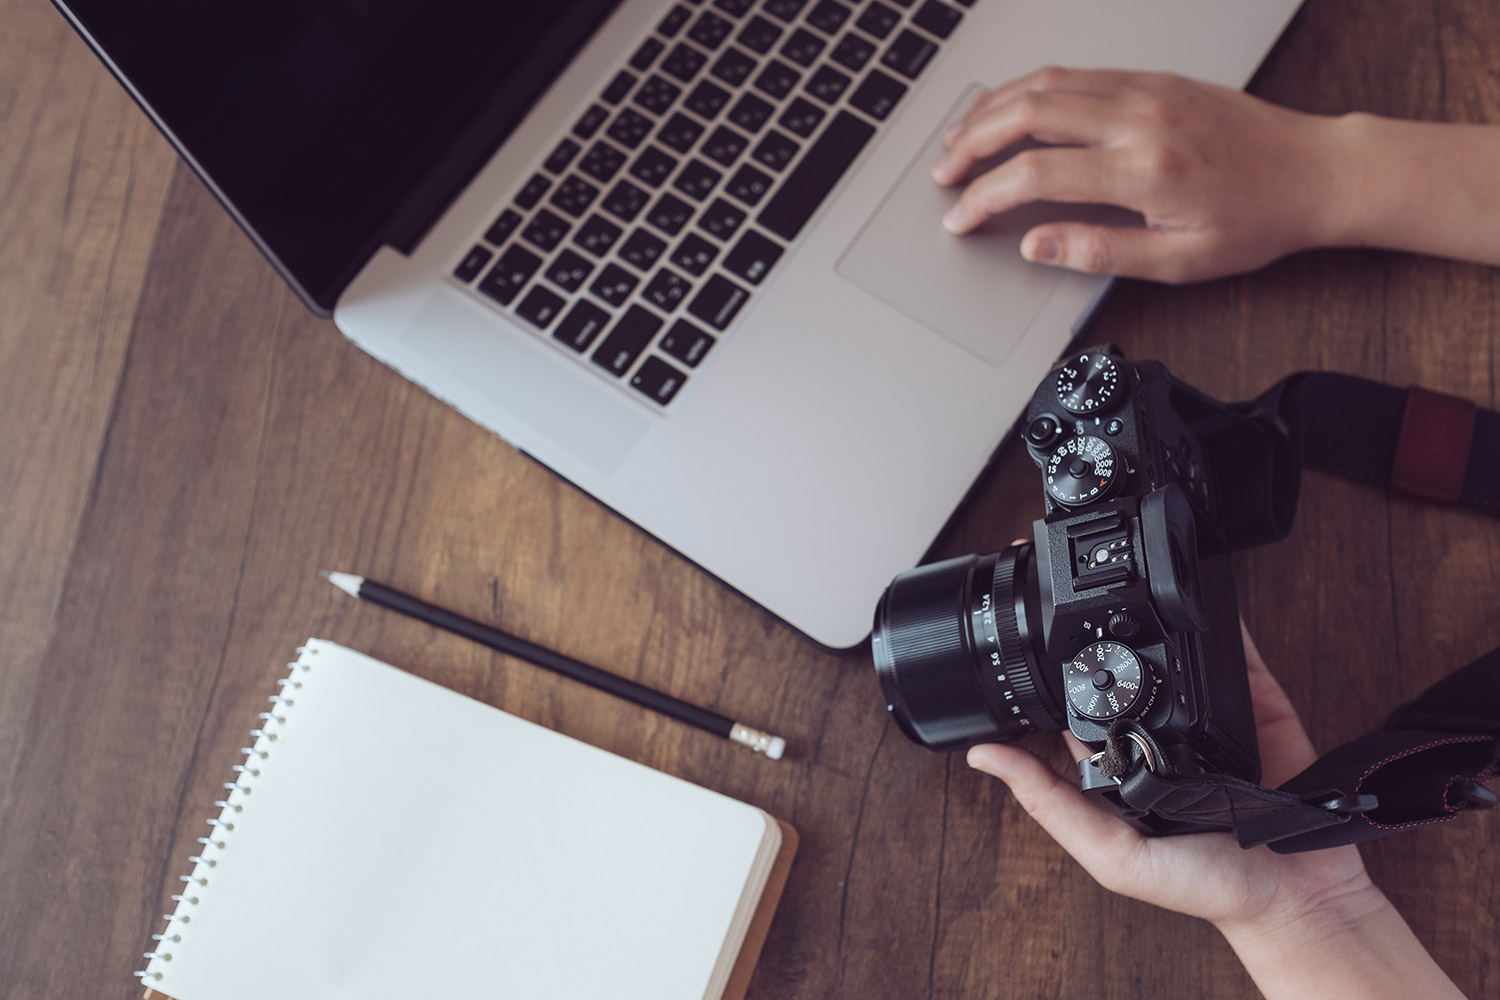 Becoming self-employed - 13 things to consider before going freelance,image of photography work space | Crunch